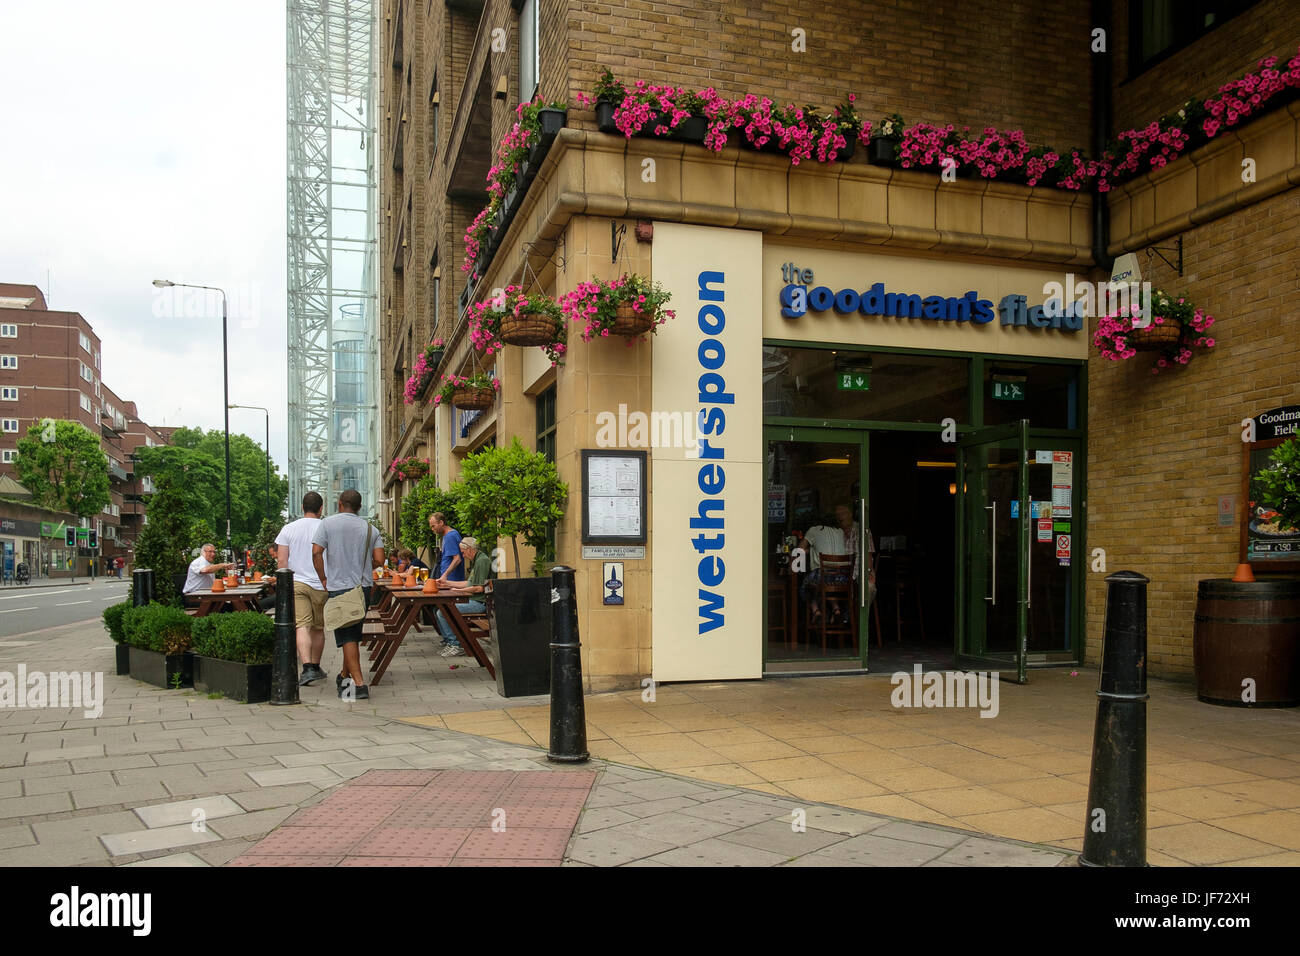 Wetherspoon's Pub The Goodman's Field at Aldgate, City of London - Stock Image